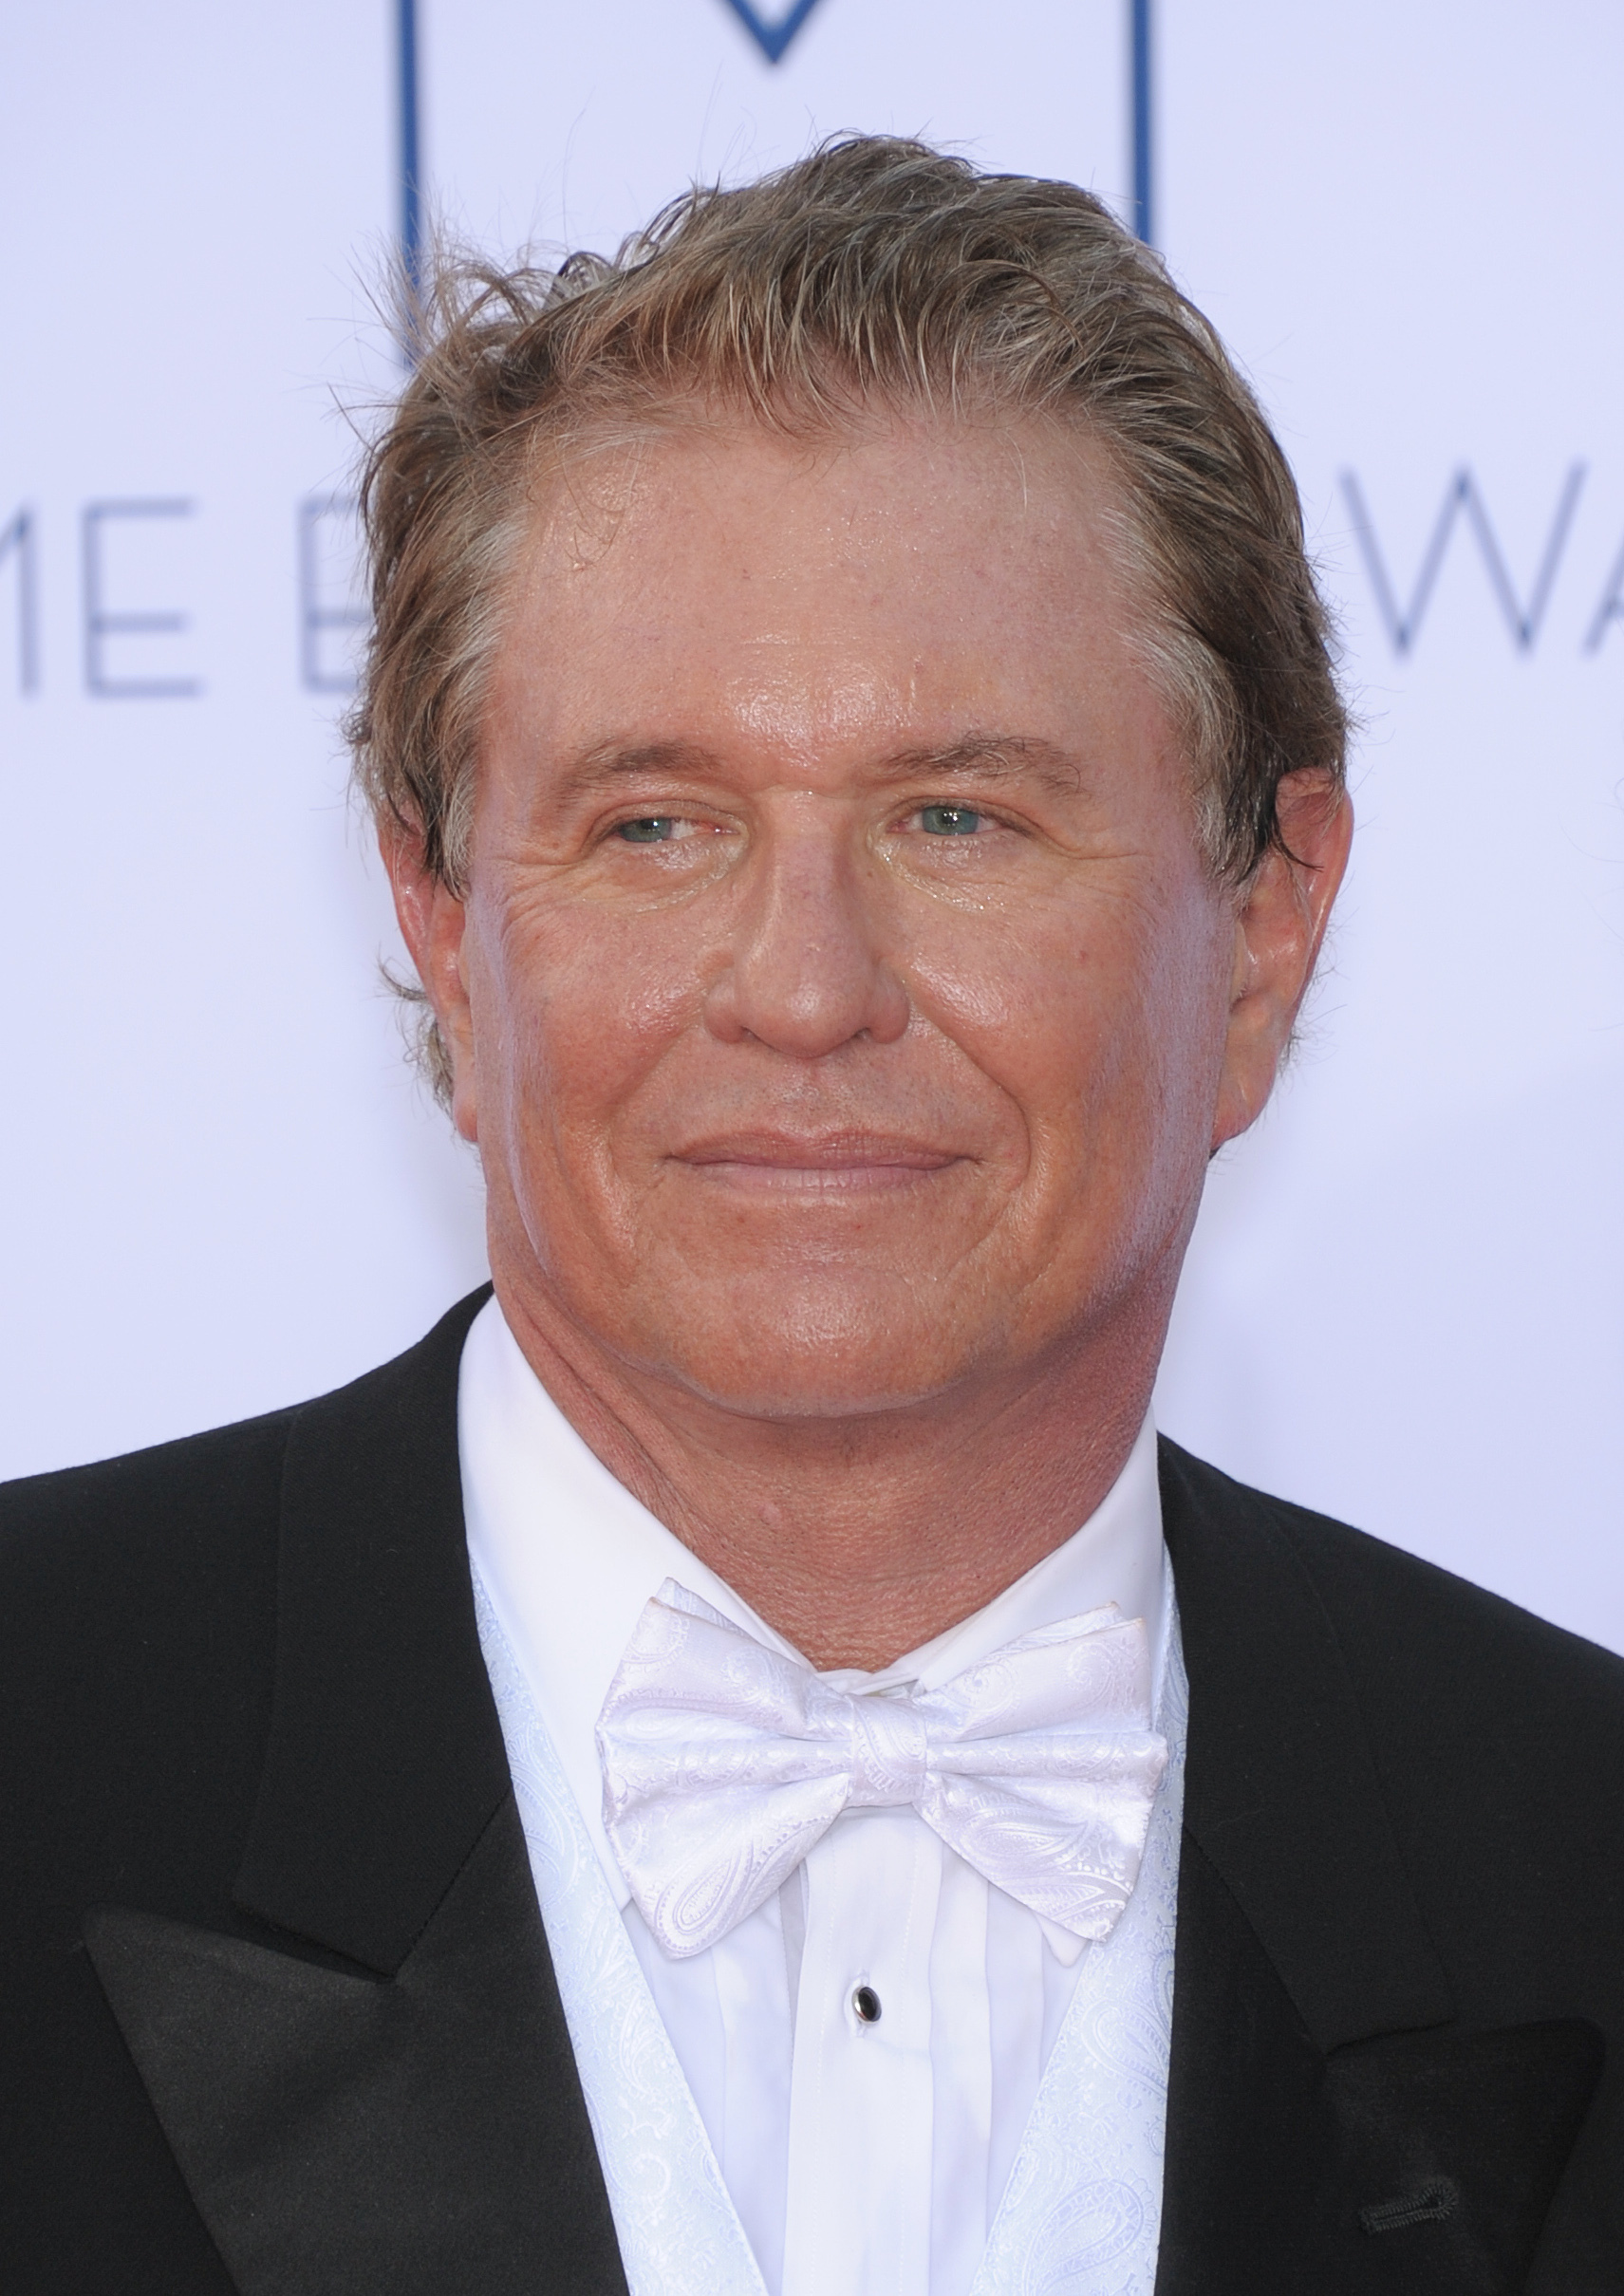 tom berenger 2016tom berenger фильмография, tom berenger platoon, tom berenger 2016, tom berenger film, tom berenger kinopoisk, tom berenger inception, tom berenger filmjei, tom berenger imdb, tom berenger young, tom berenger wife, tom berenger instagram, tom berenger sniper 2, tom berenger filmleri izle, tom berenger filmography, tom berenger 2017, tom berenger photos, tom berninger the national, tom berenger net worth, tom berenger filmleri, tom berenger films list